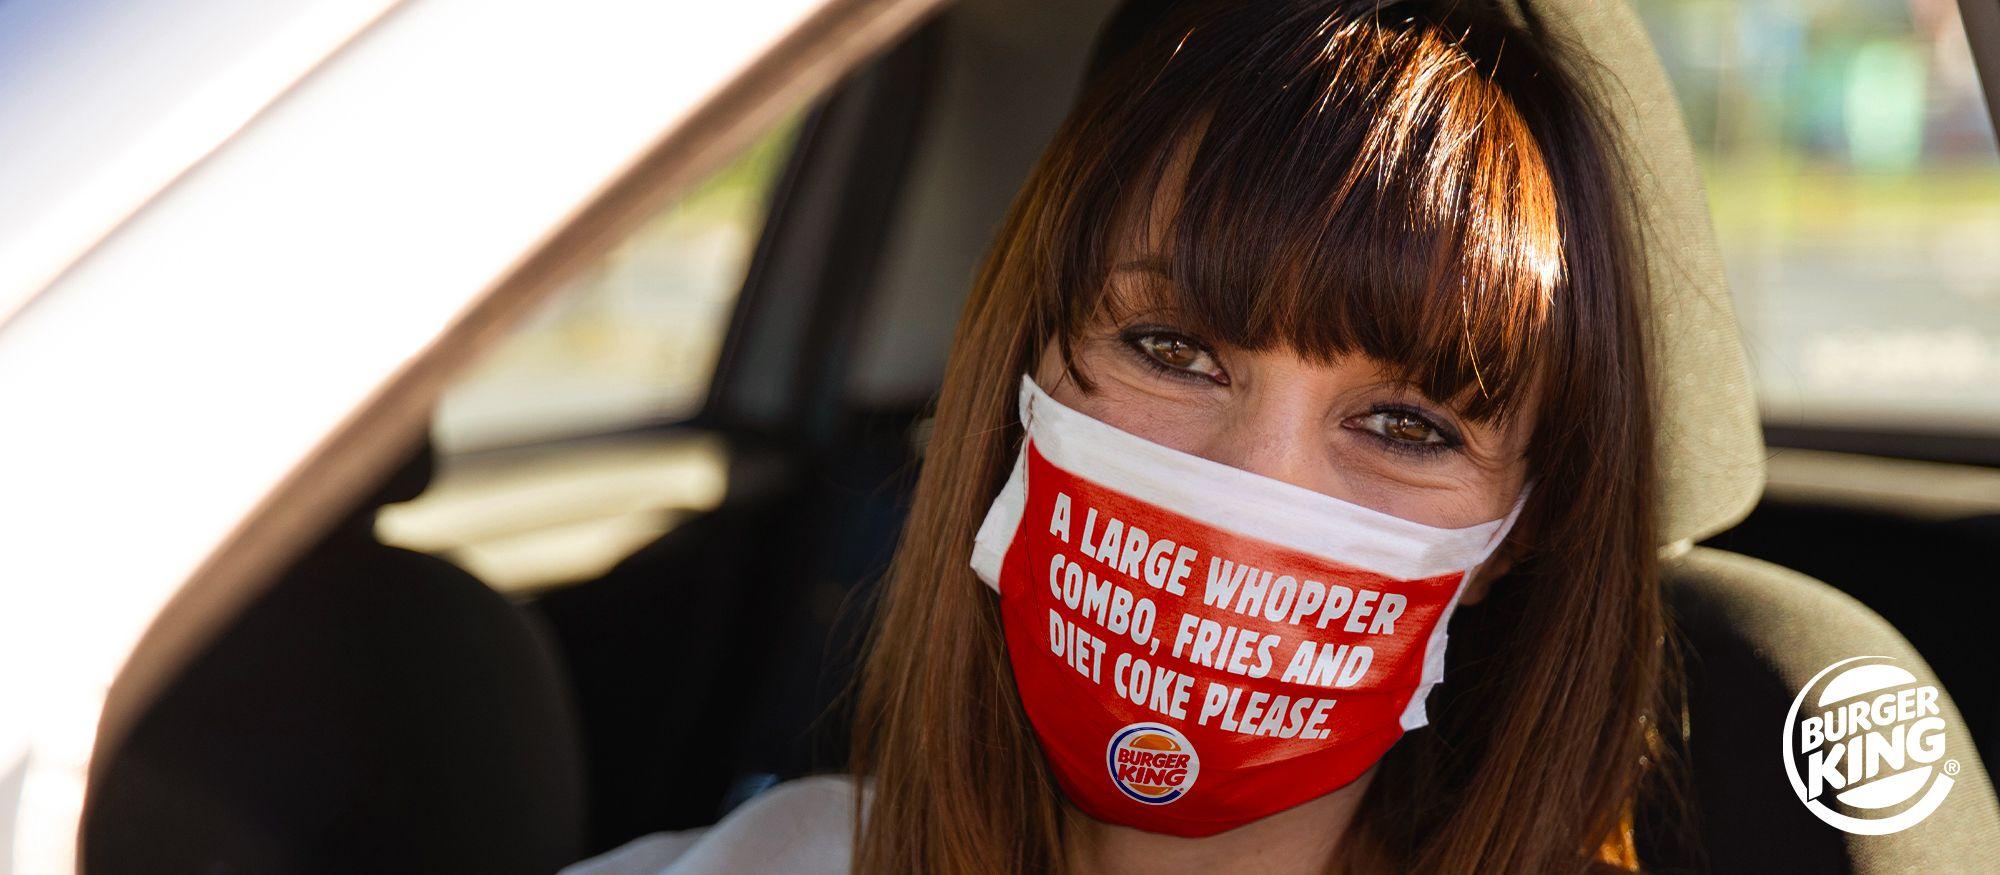 Burger King prints orders on face masks so customers don't even have to speak